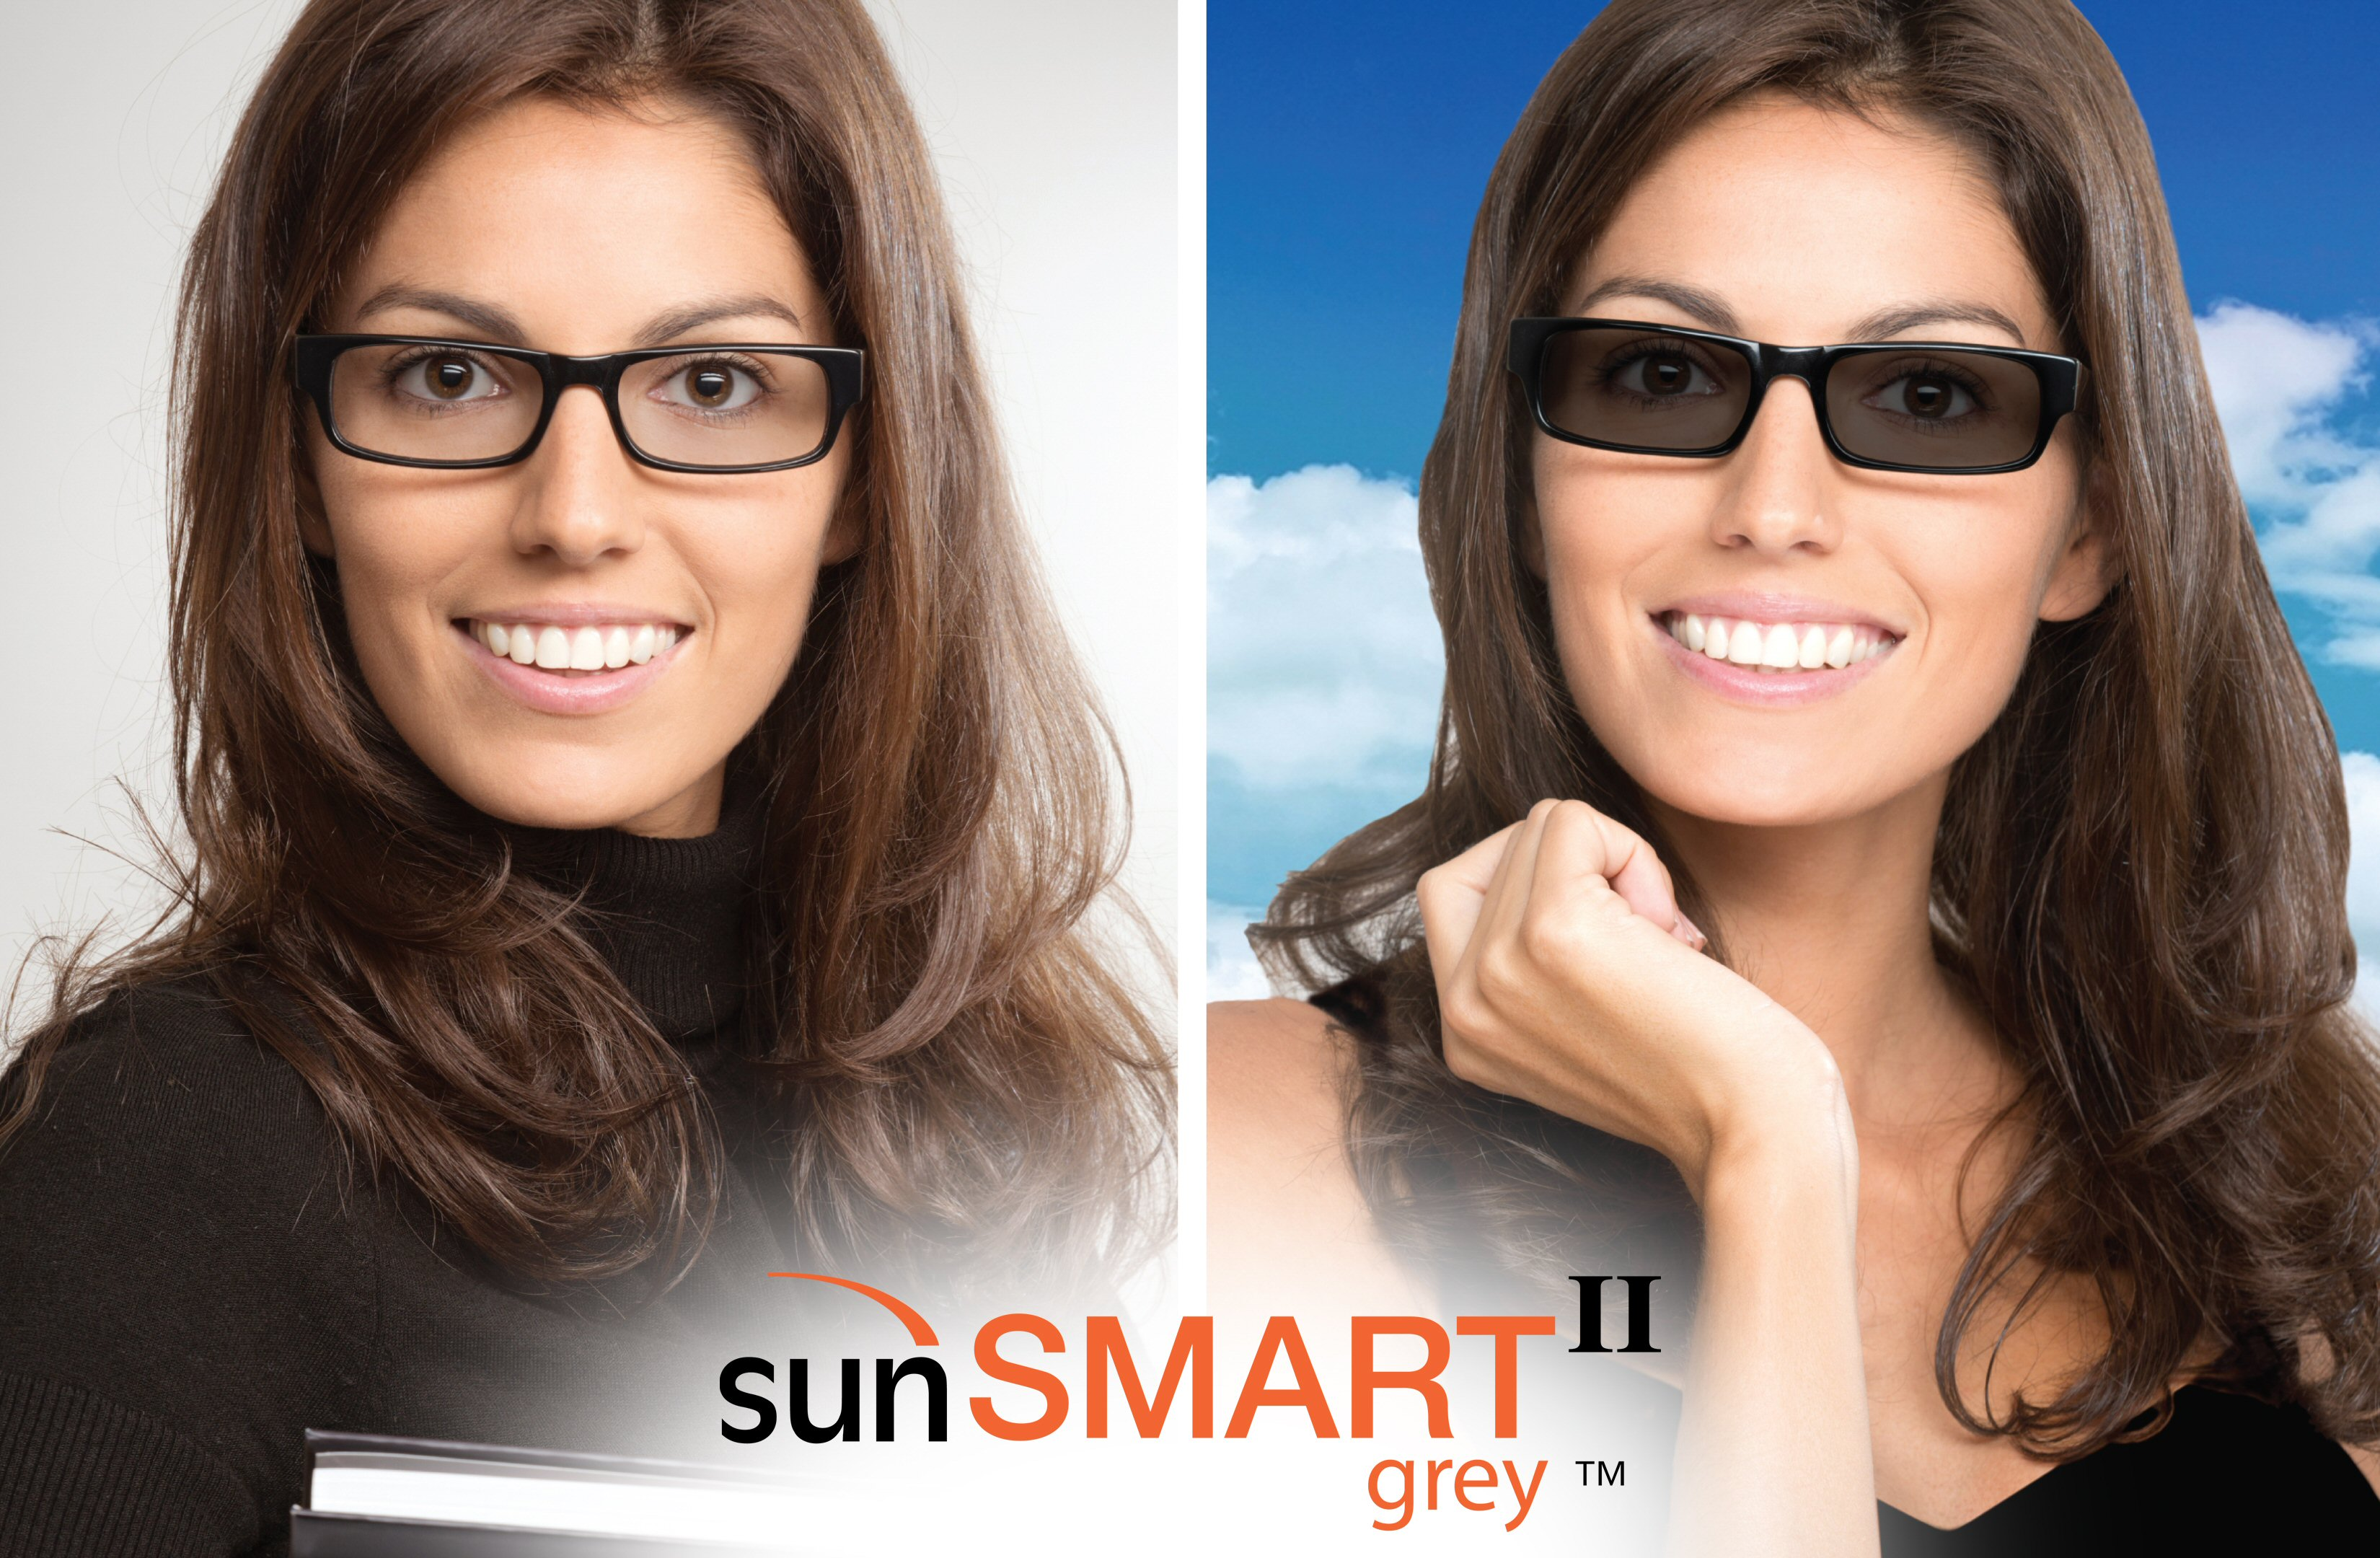 sunSMART II Girl indoor outdoor logo